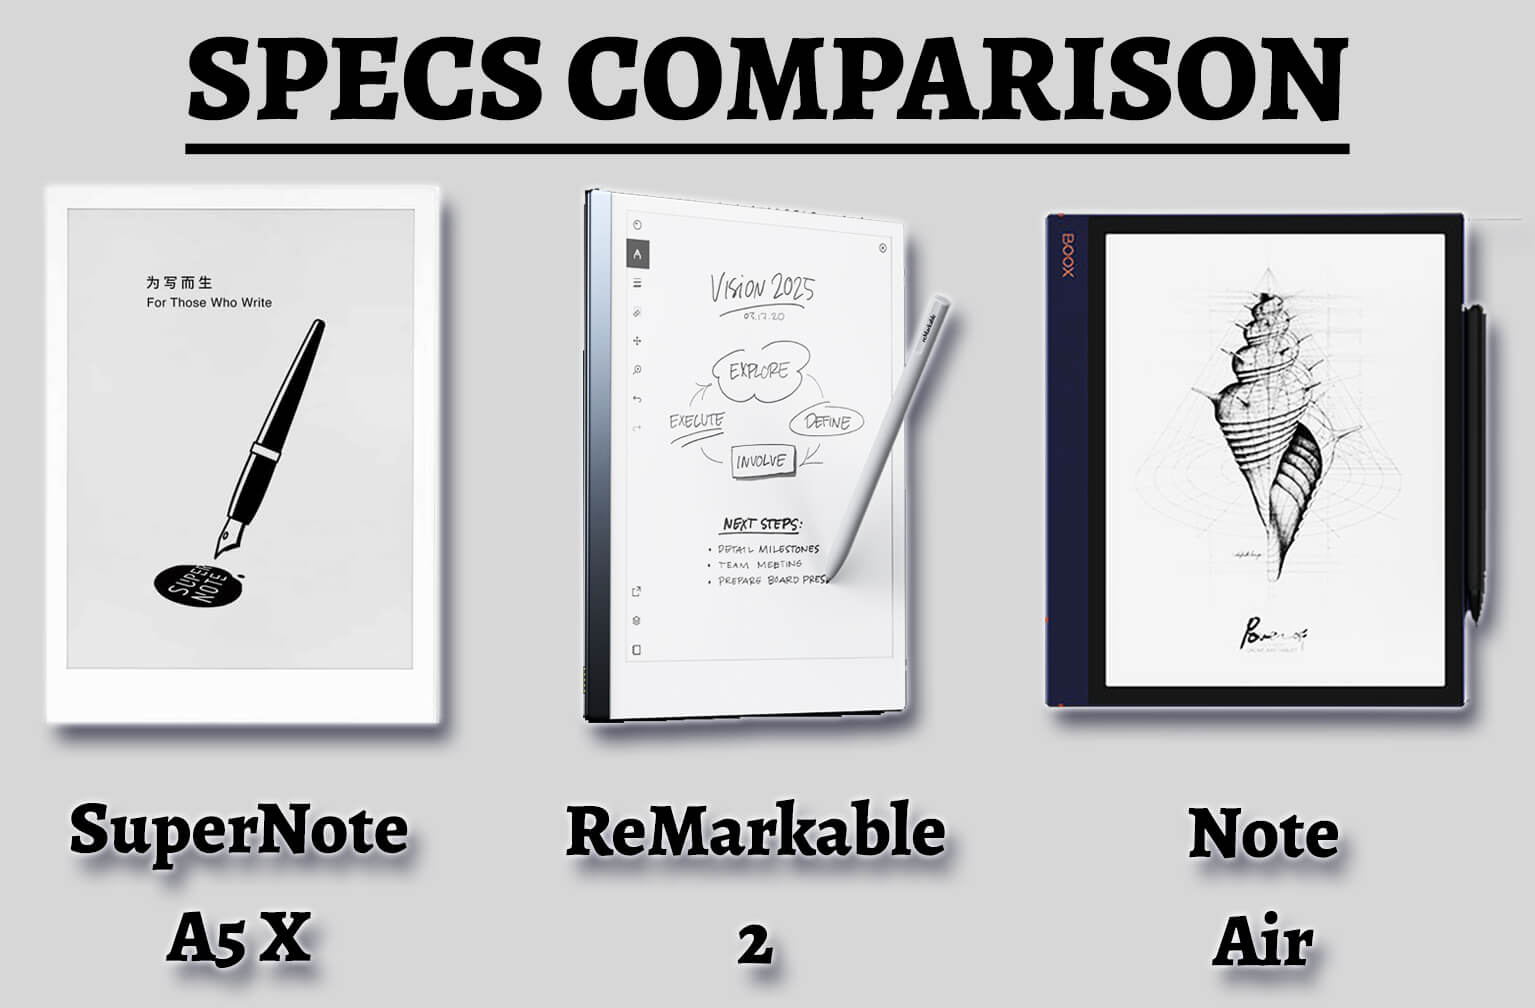 SuperNote A5X vs Remarkable2 vs OnyxBoox Note air specs